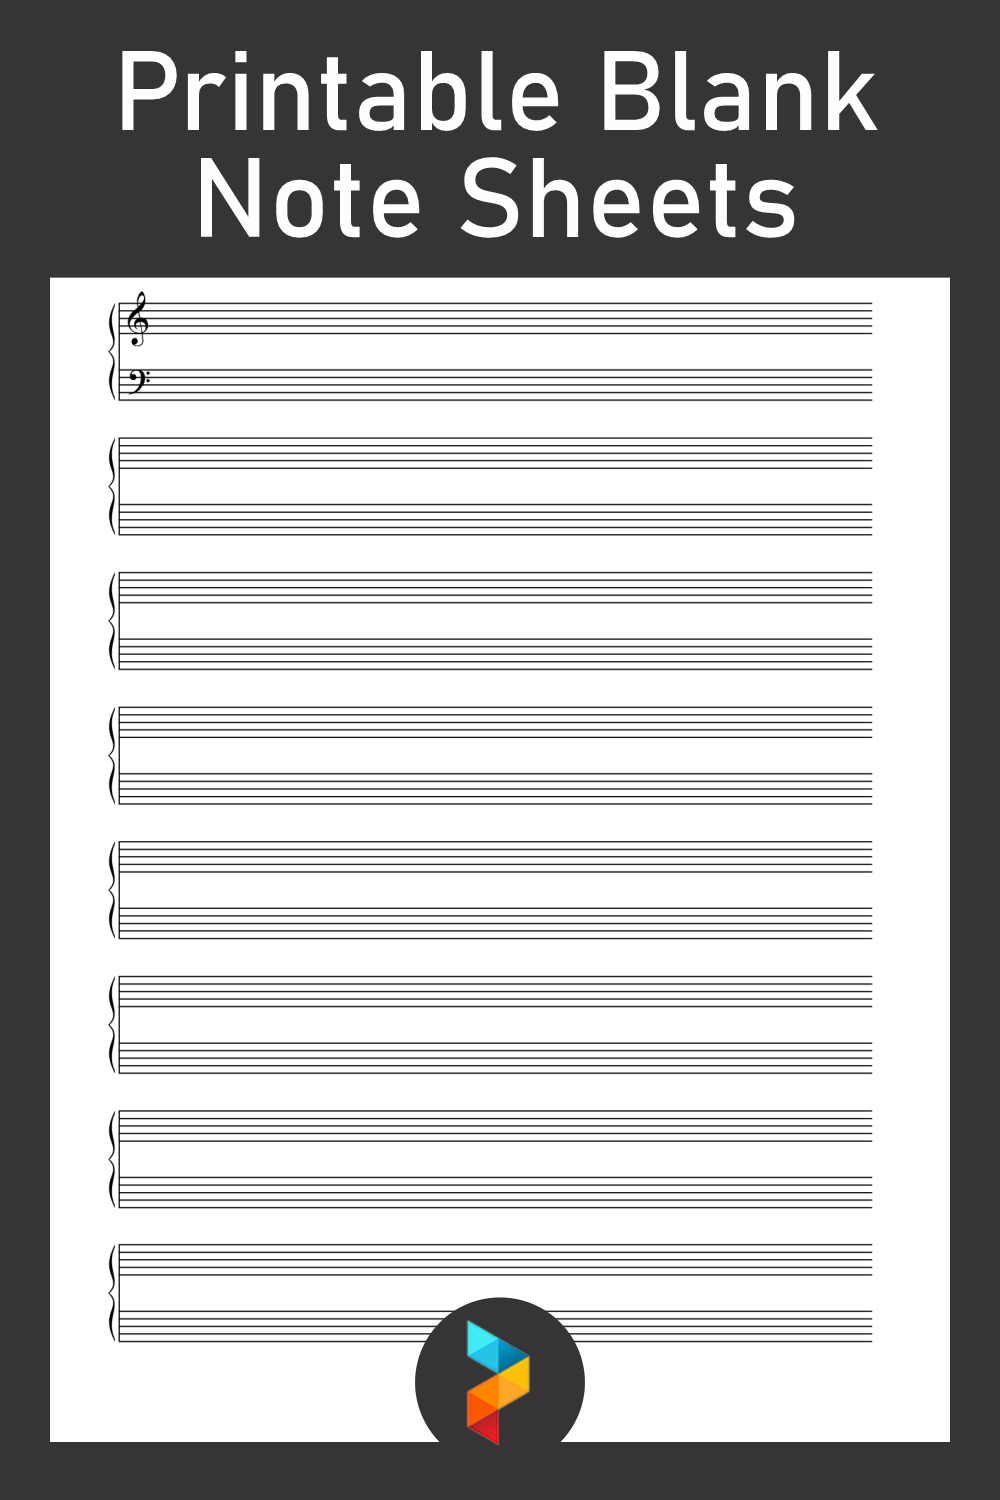 Printable Blank Note Sheets